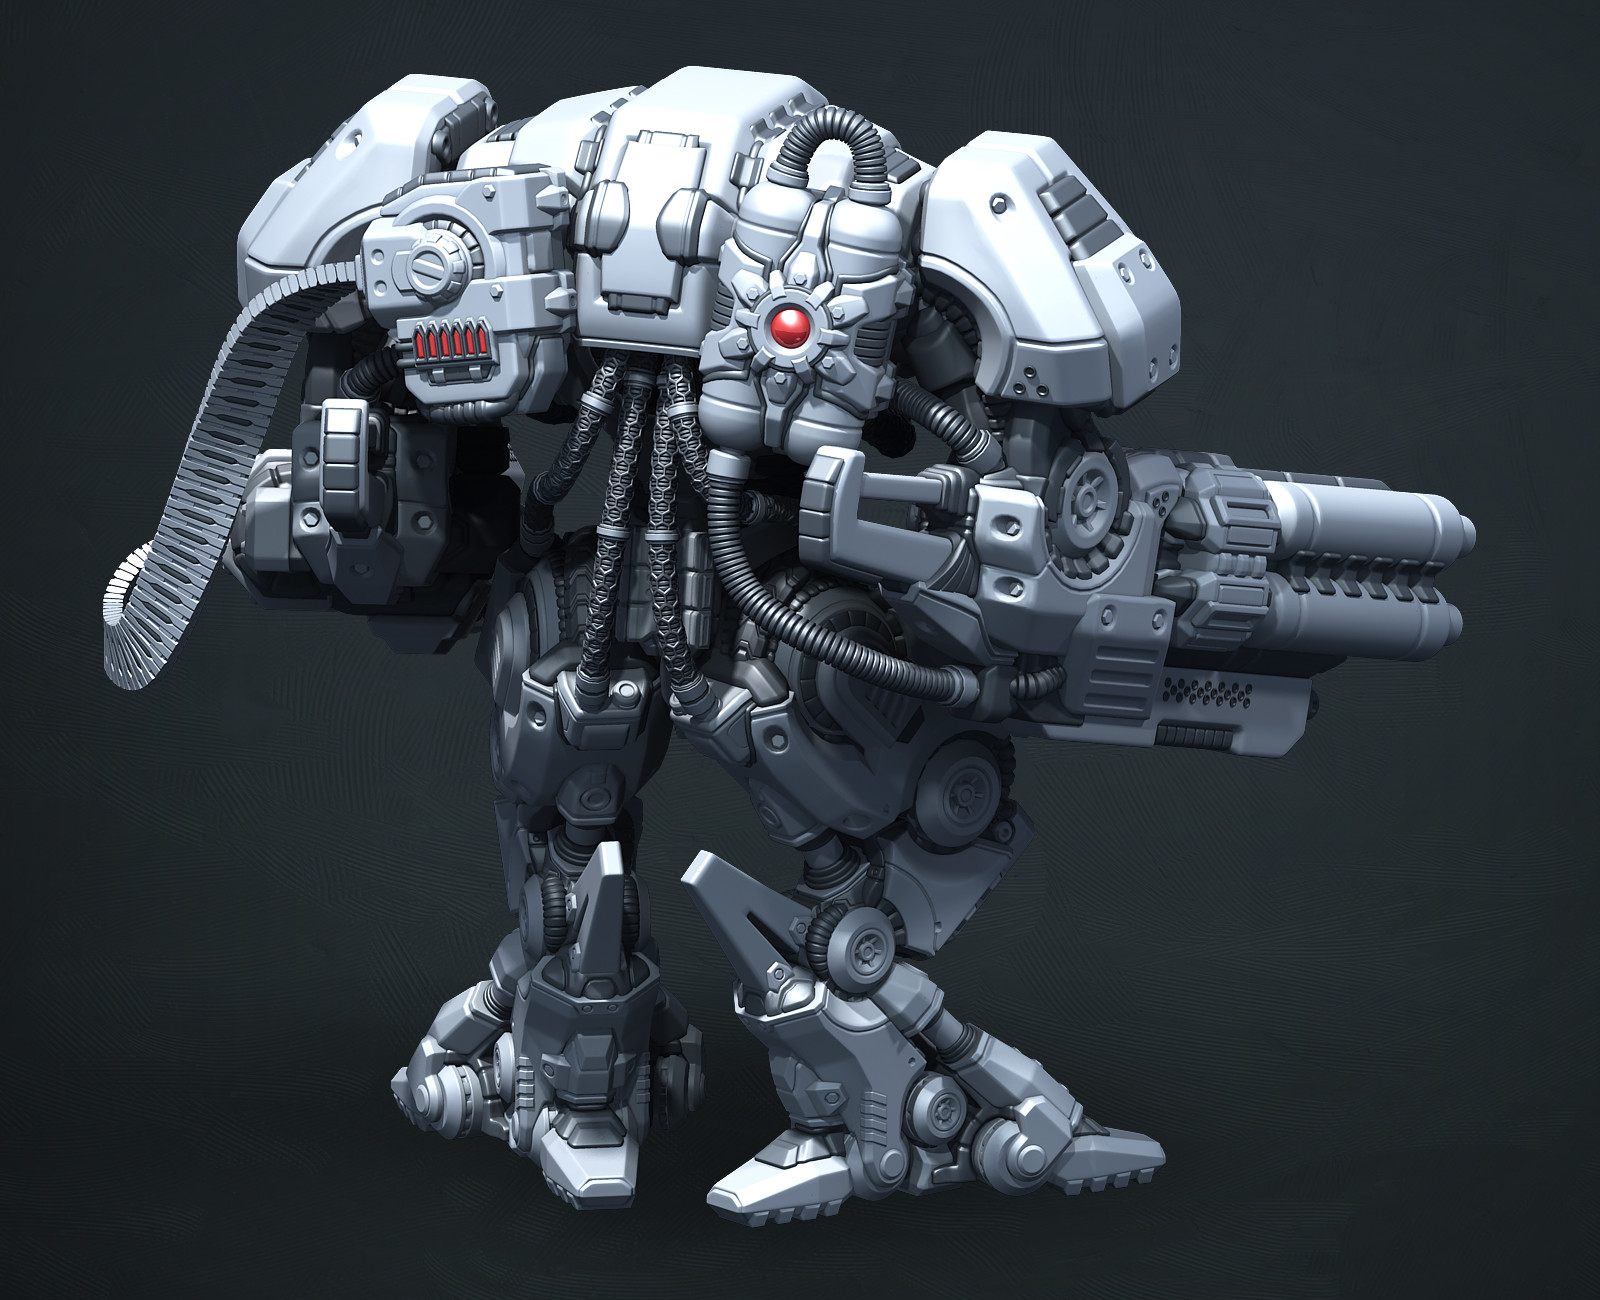 Vladimir voronov warmachine highpoly06